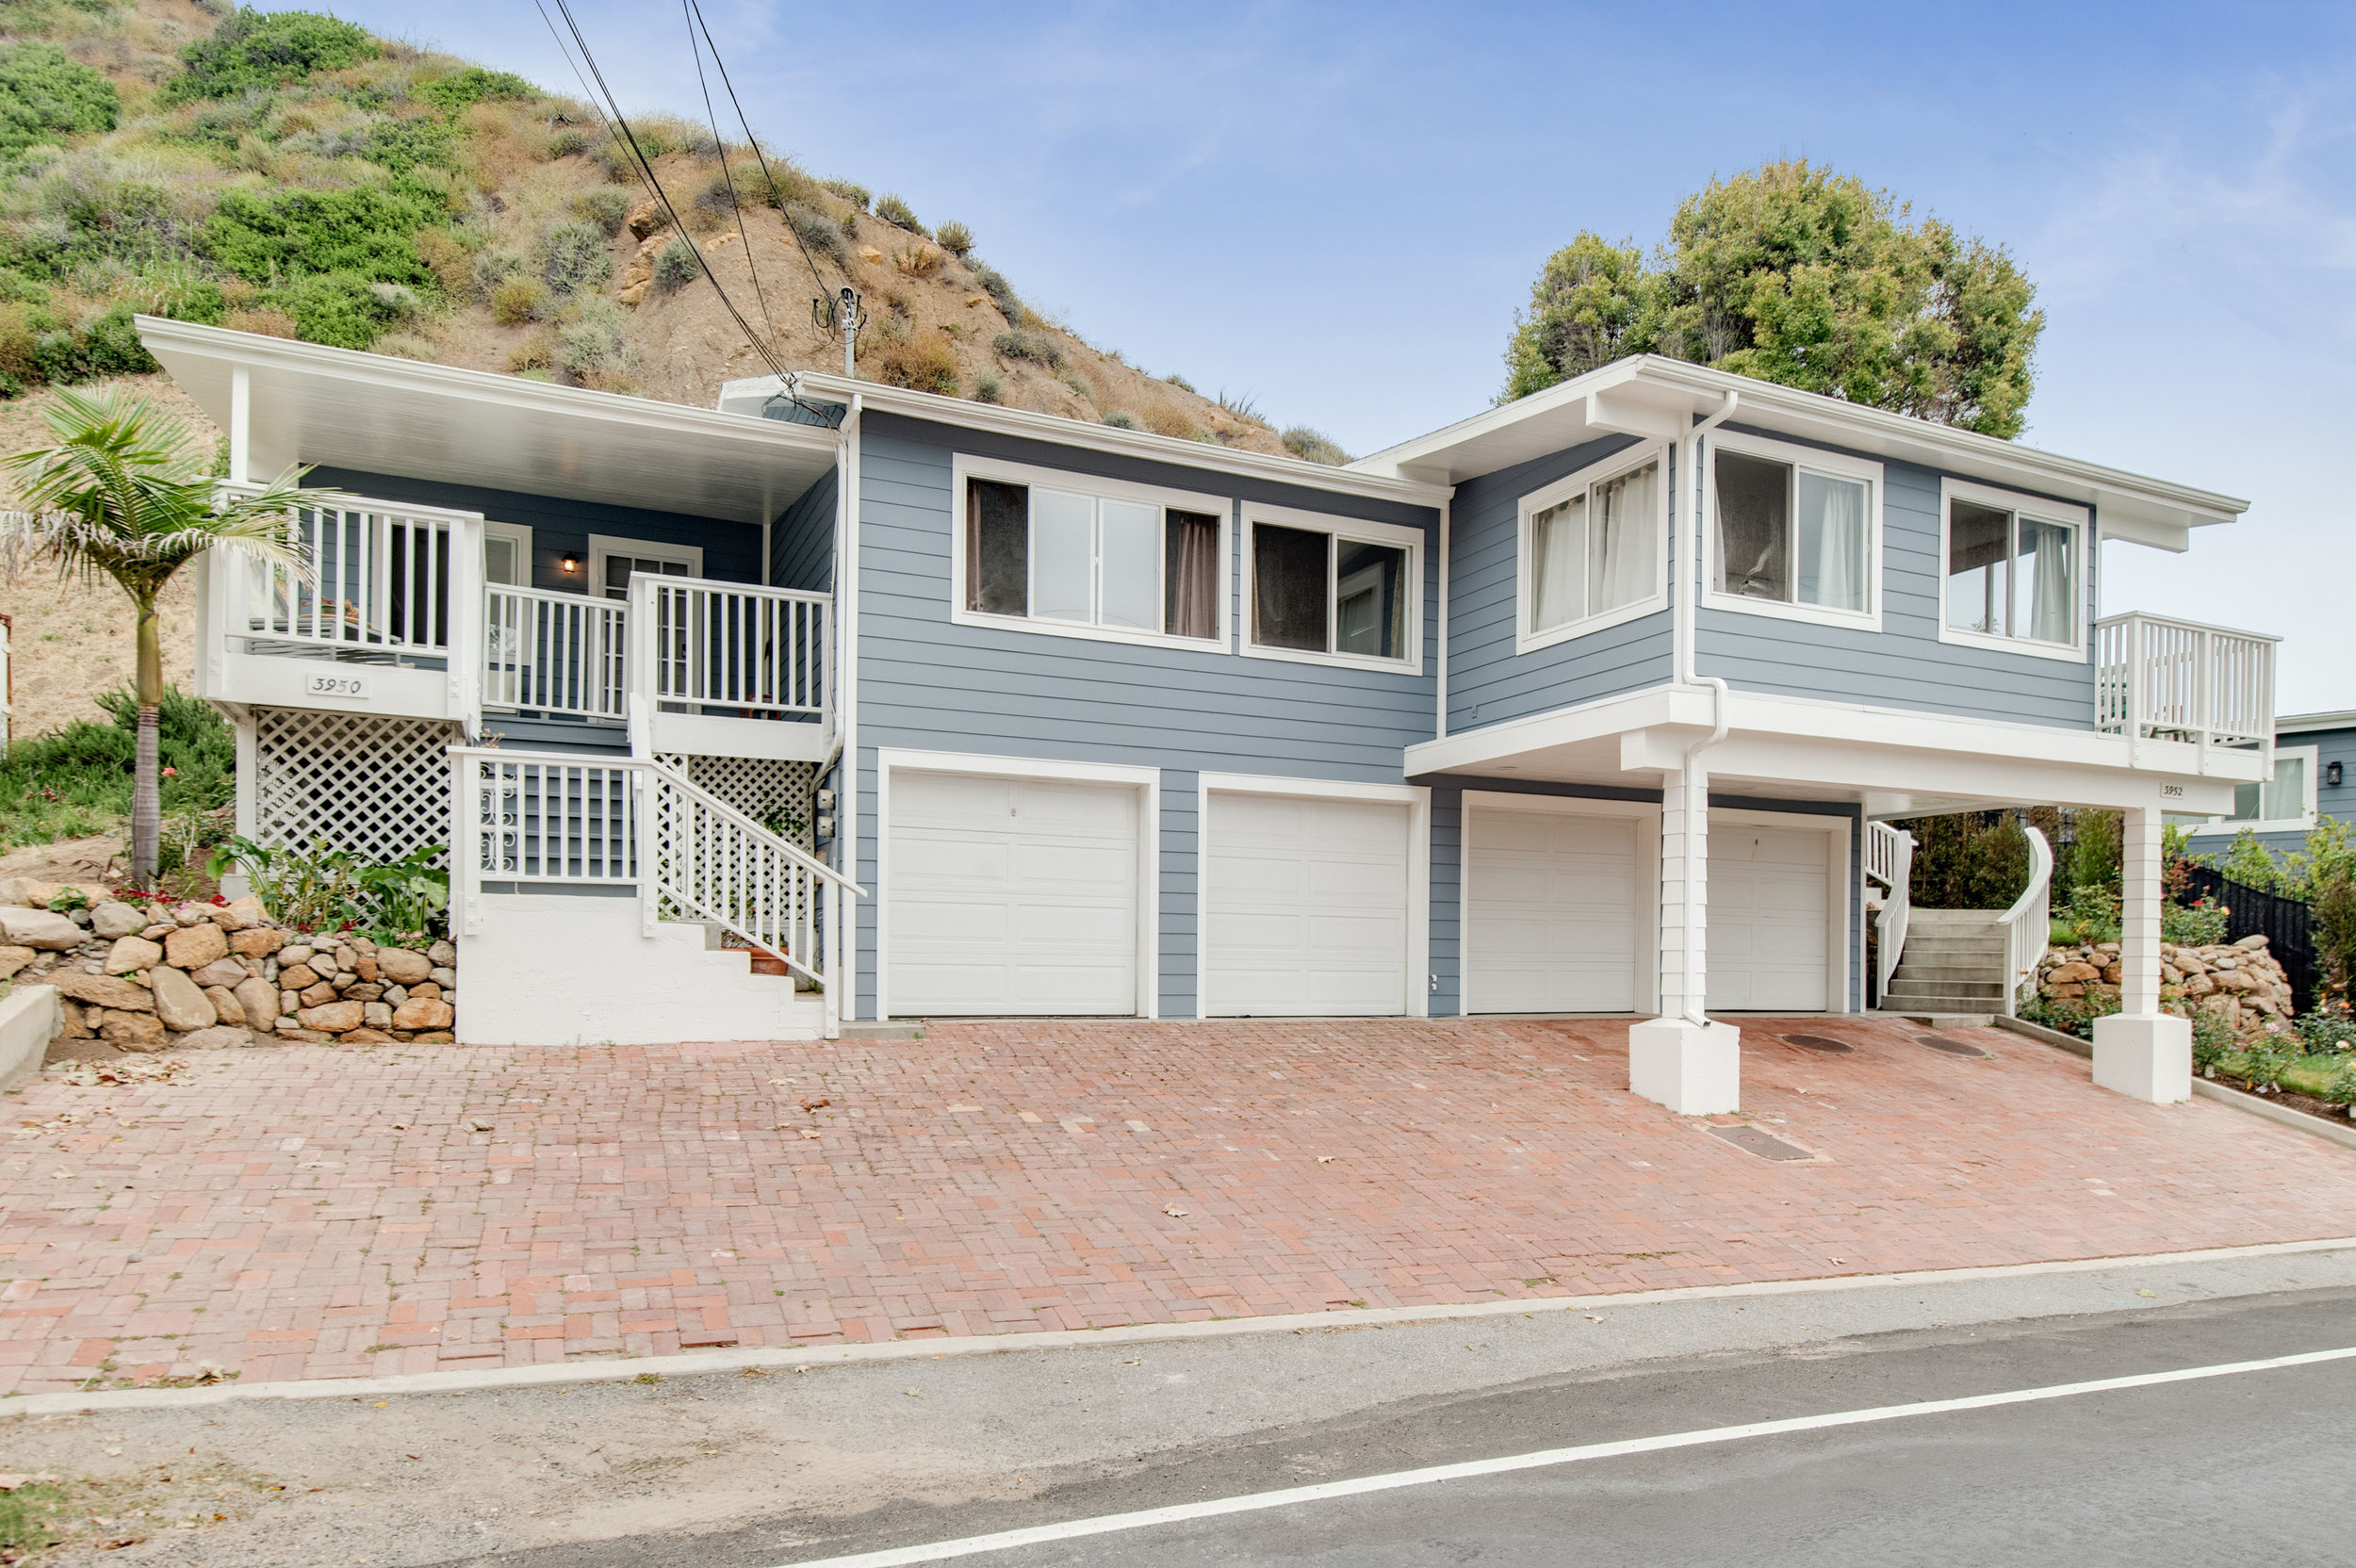 012 Front 3950 Las Flores For Sale Lease The Malibu Life Team Luxury Real Estate.jpg